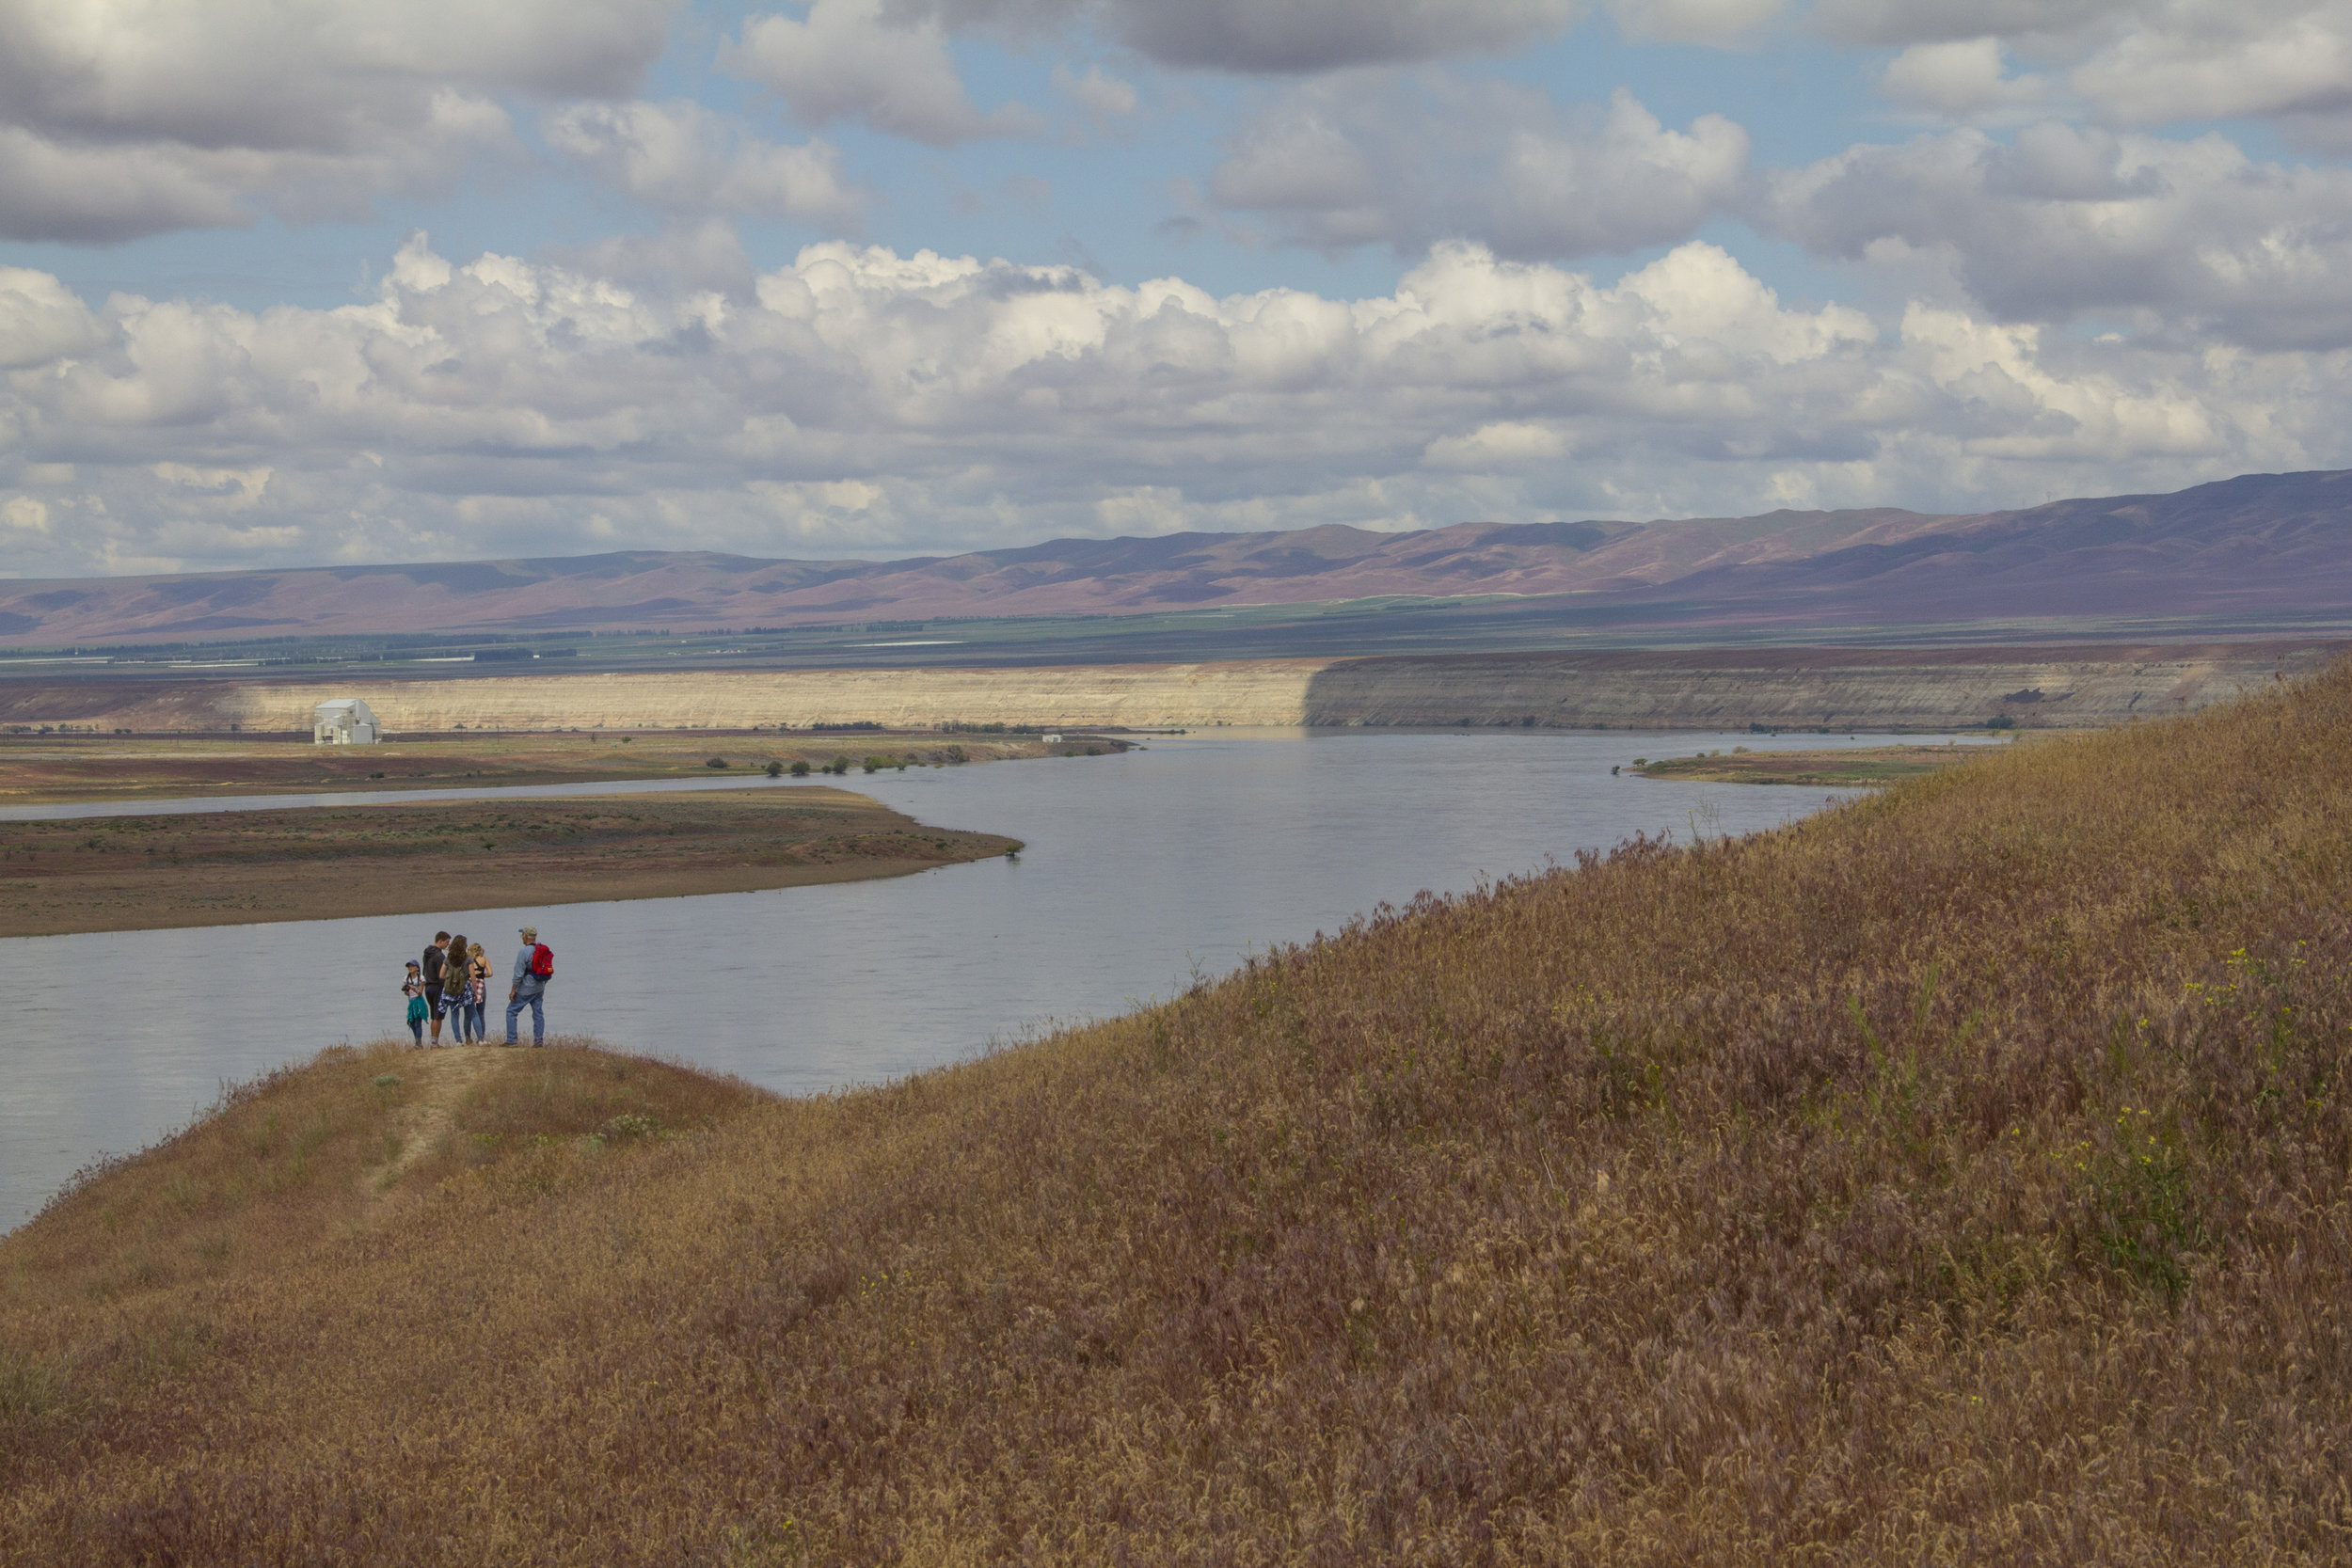 A family enjoys the view above the White Bluffs in the Hanford Reach National Monument. Photo by Joel Rogers.